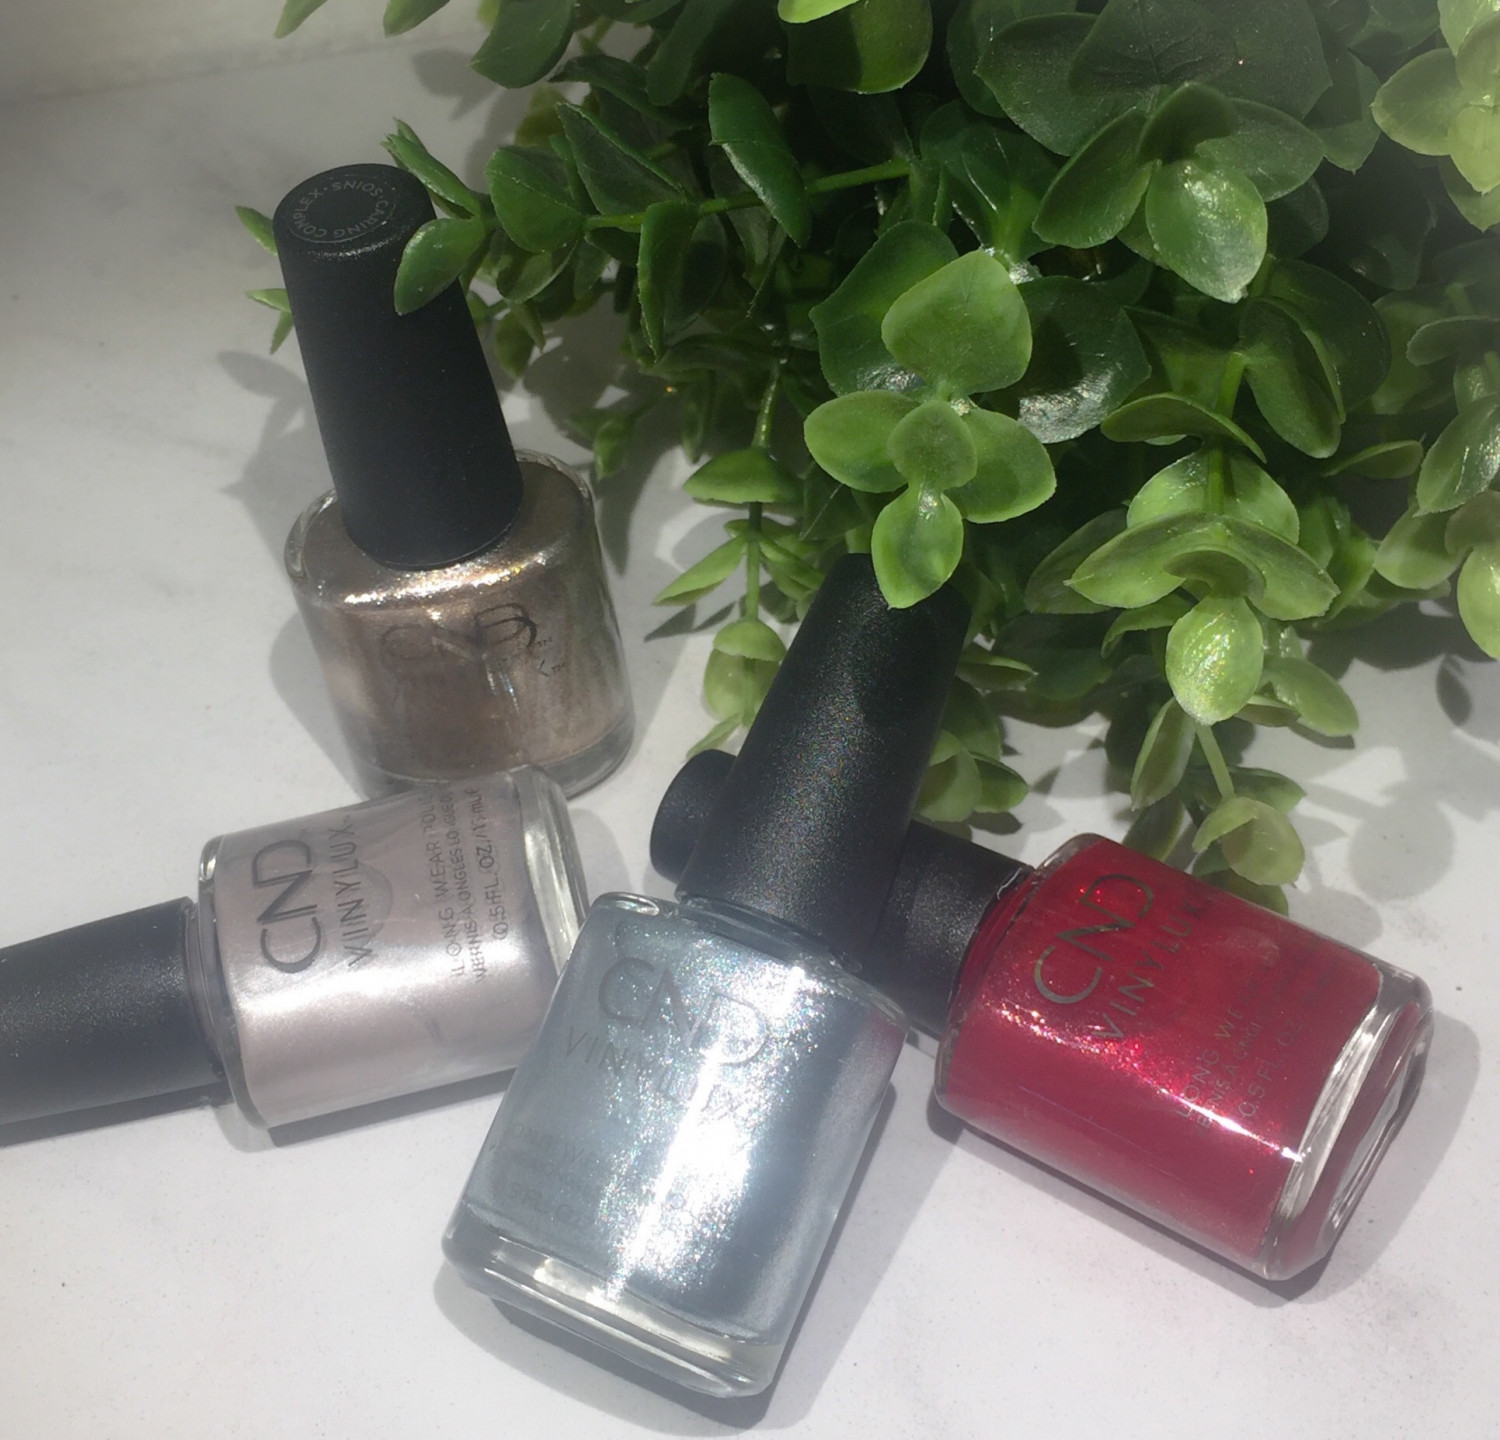 CND, CND Vinylux, Vinylux, CND Danmark, Soirée Strut, Kiss Of Fire, After Hours, Bellini, Swatch, Swatches, Night Moves The Collection, Swatches Night Moves,